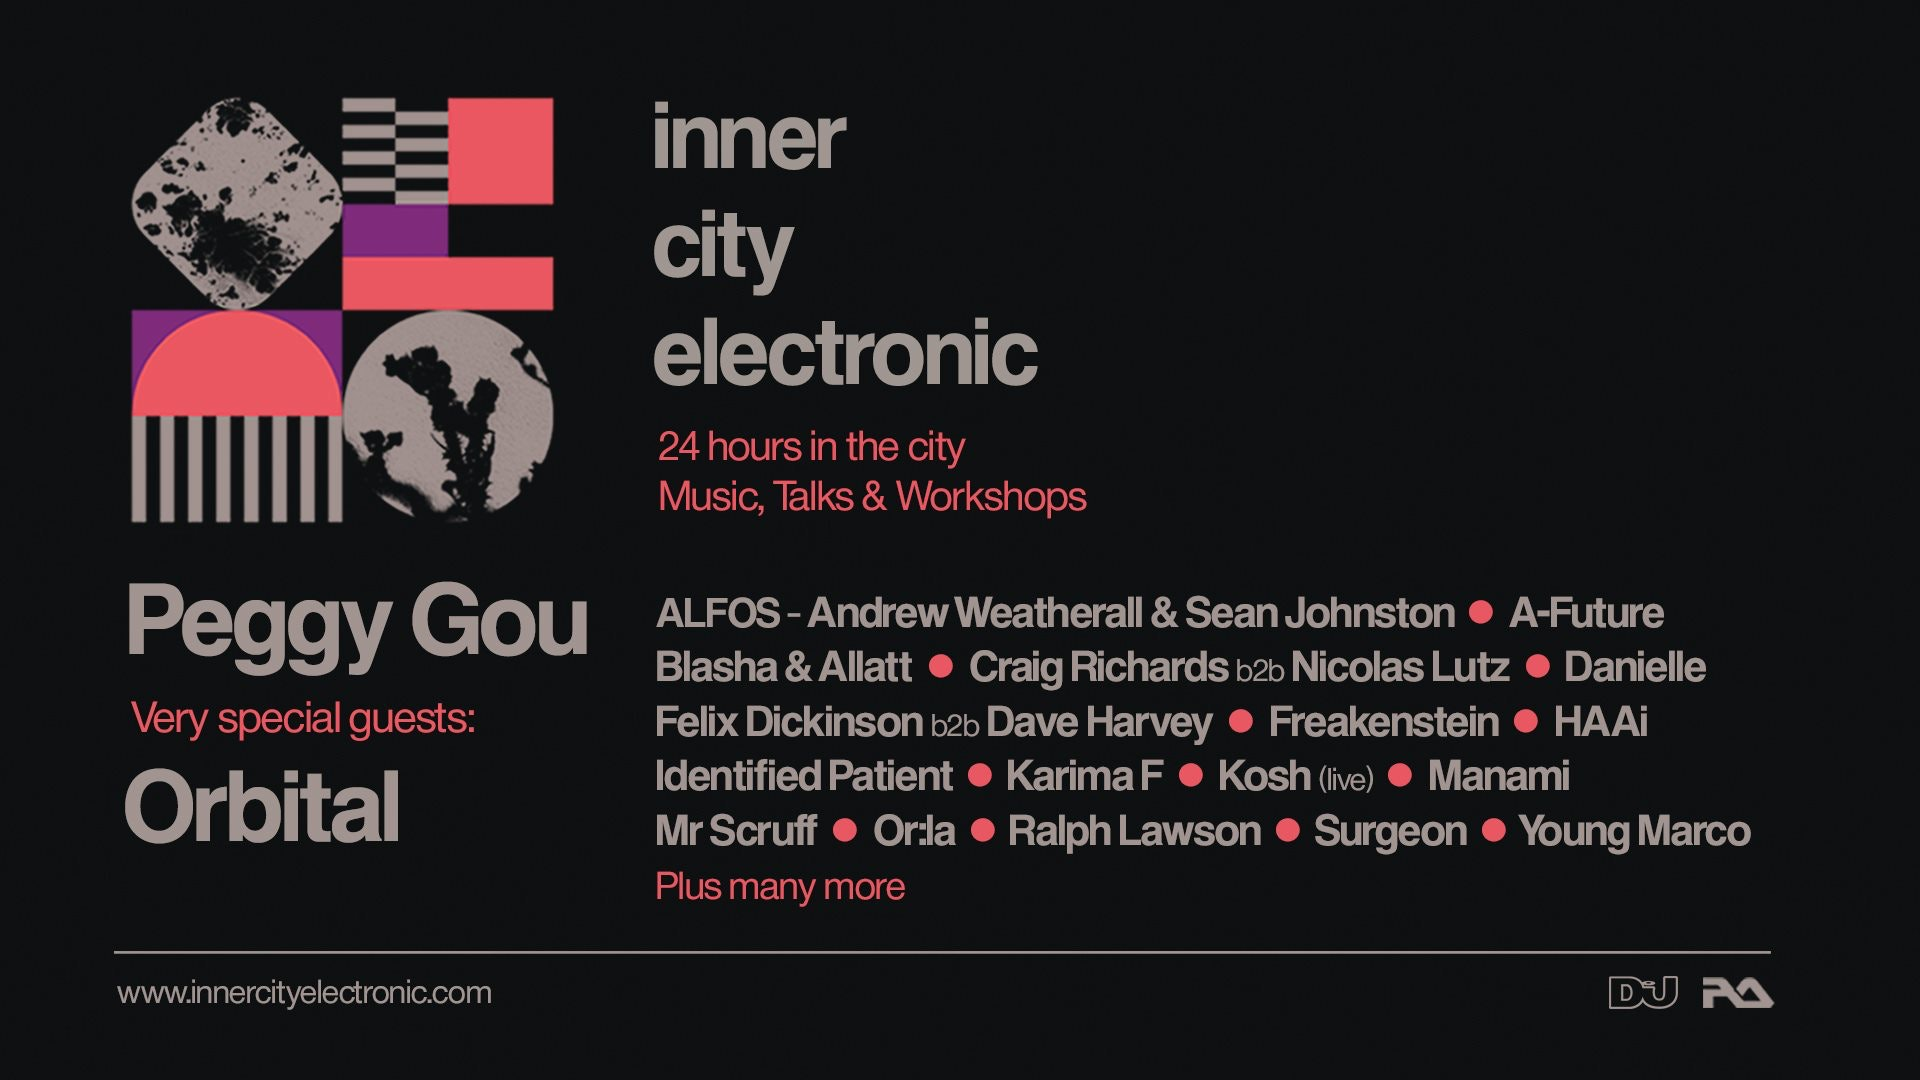 inner city electronic 2020 at The Warehouse Leeds